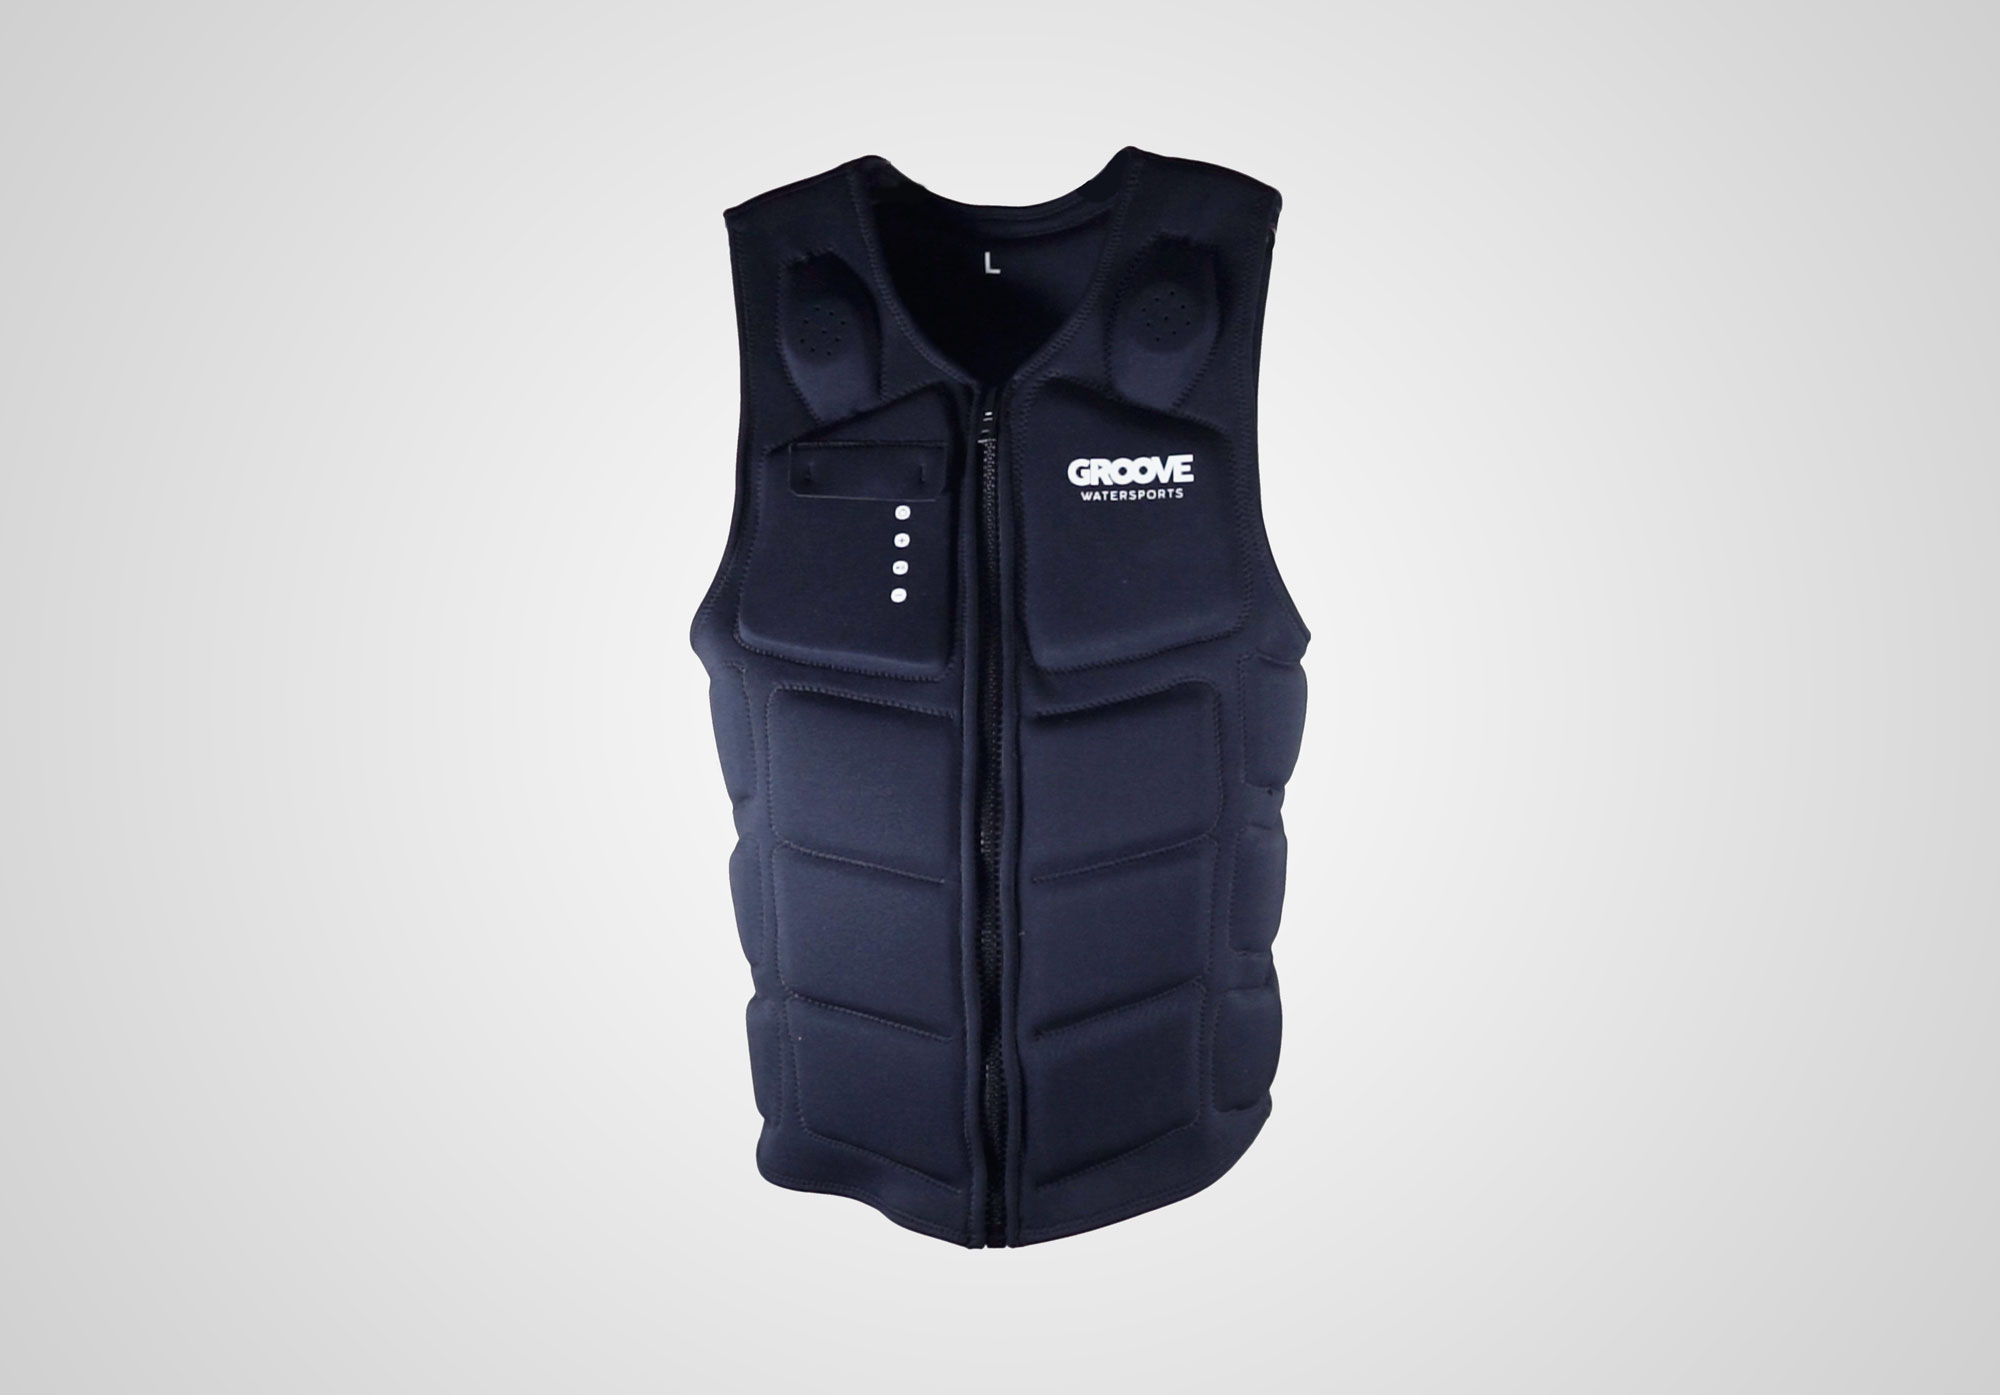 Groove Vest Front